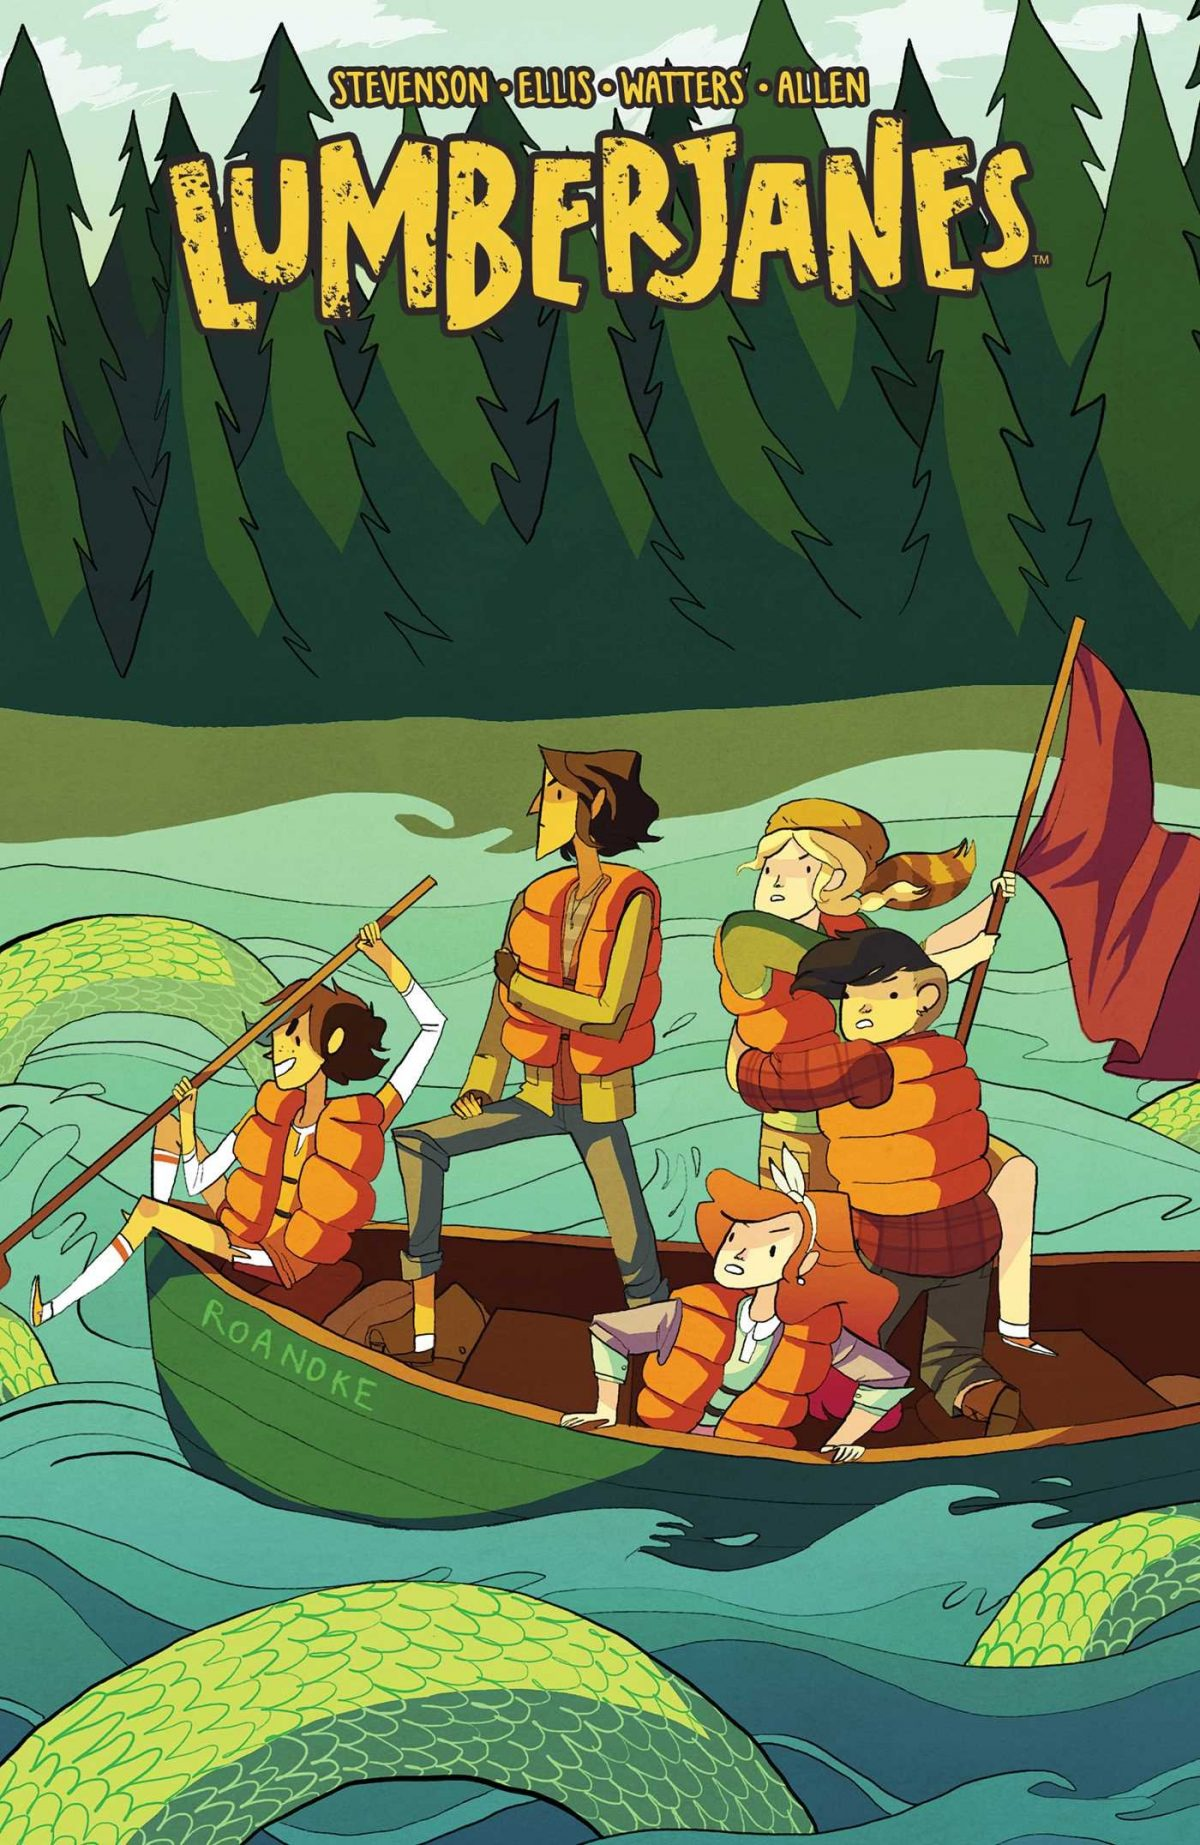 Five girls on a canoe in the river